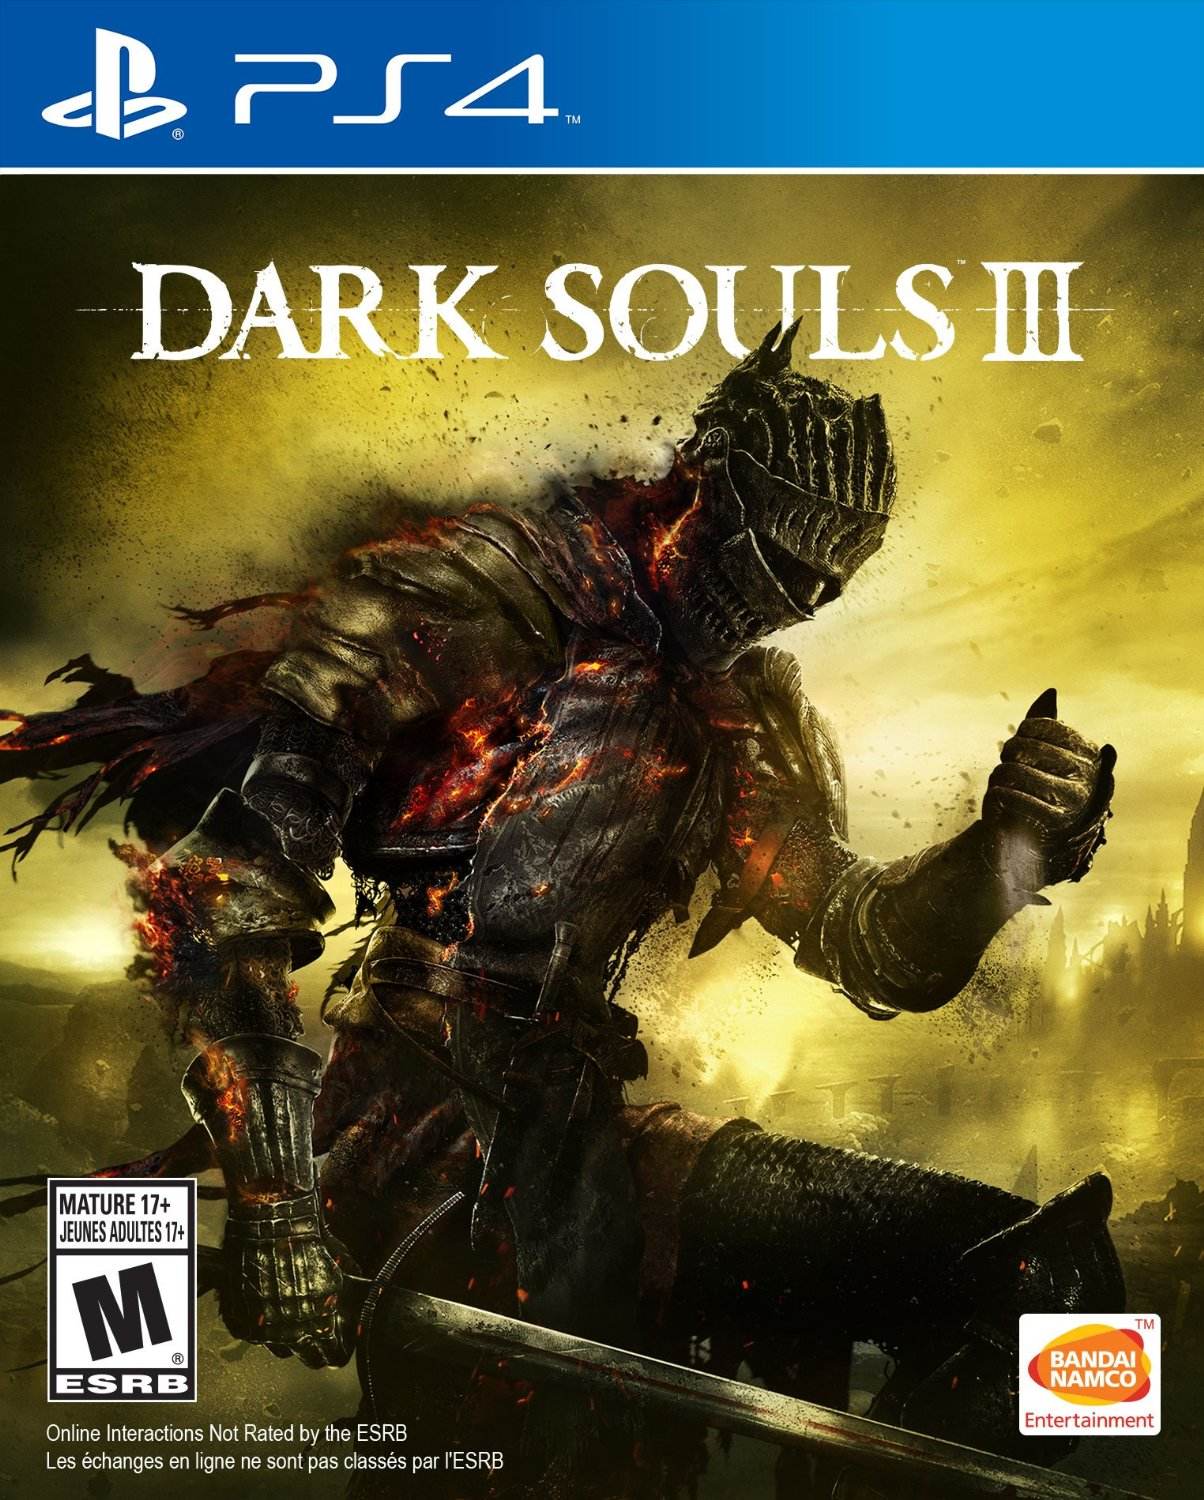 PS4 Dark Souls III Português e Español (PlayStation 4)